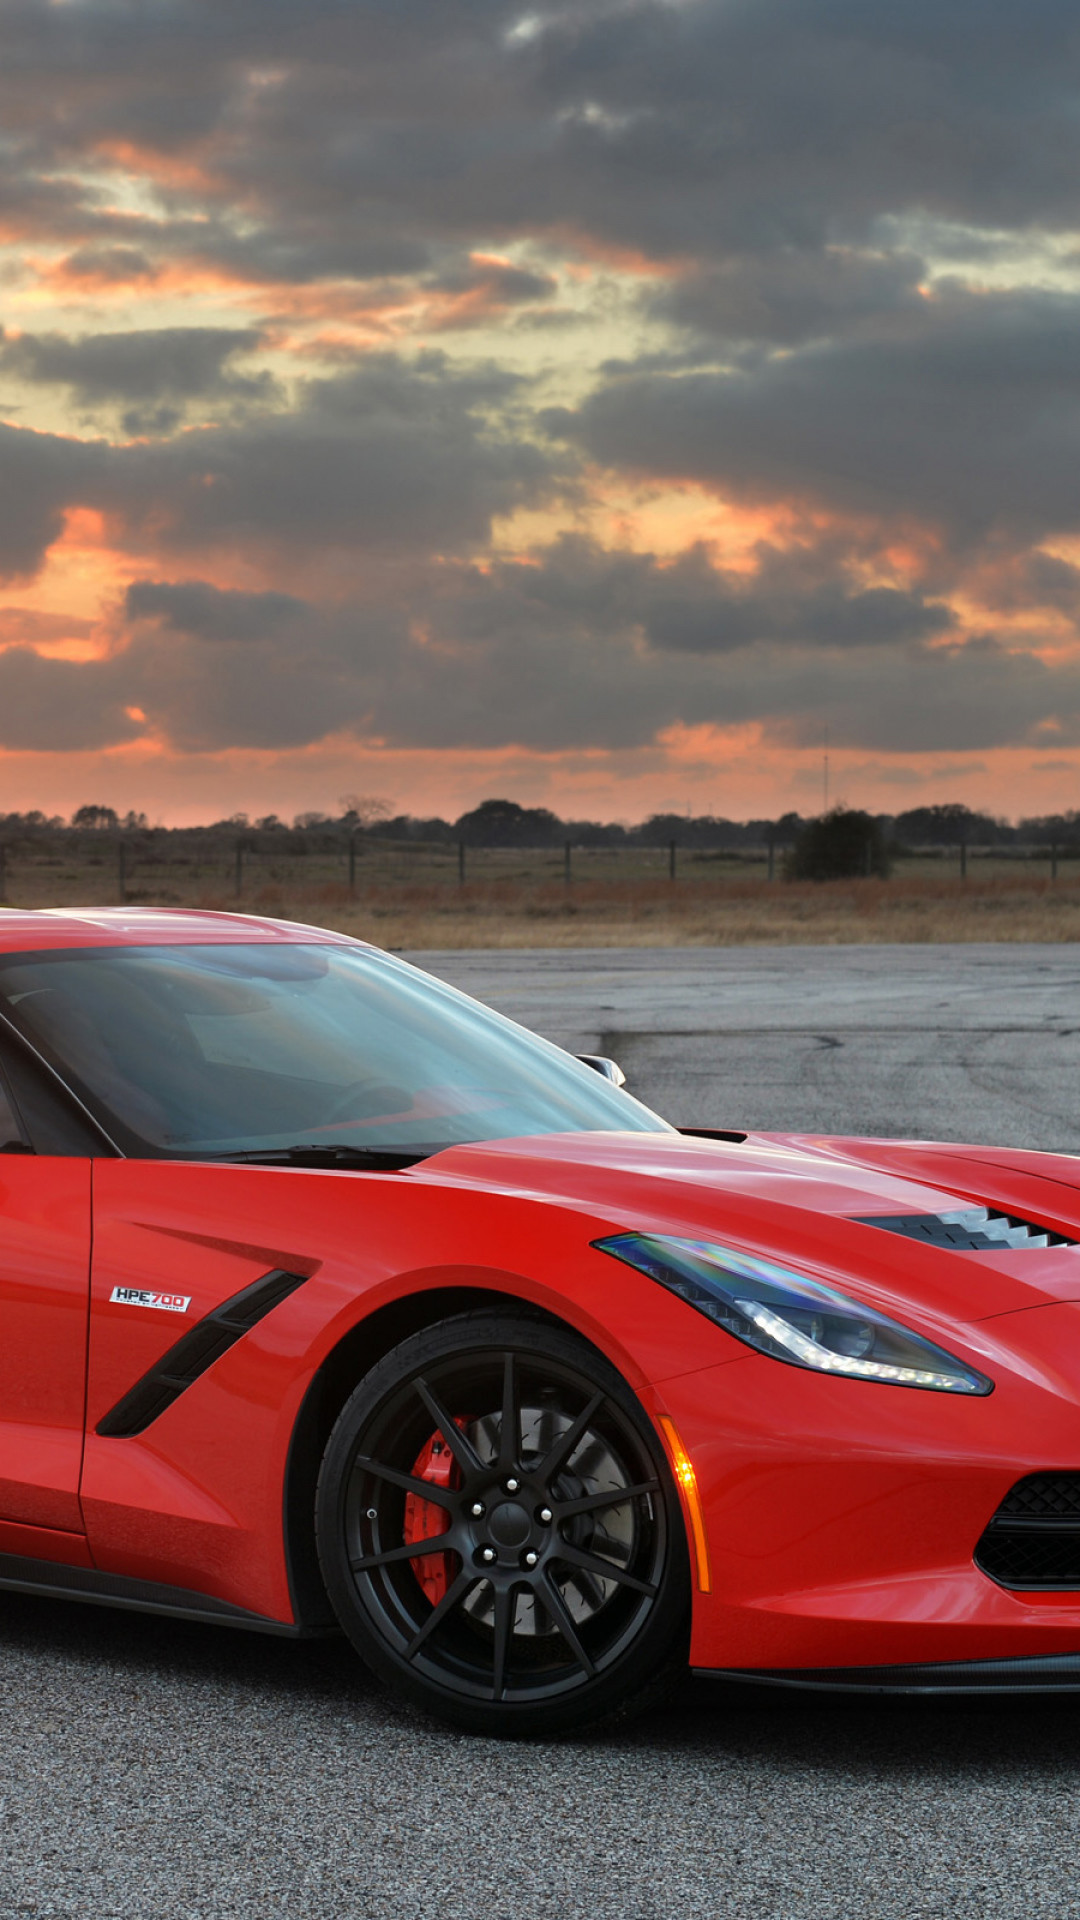 c7 corvette wallpaper 76 images